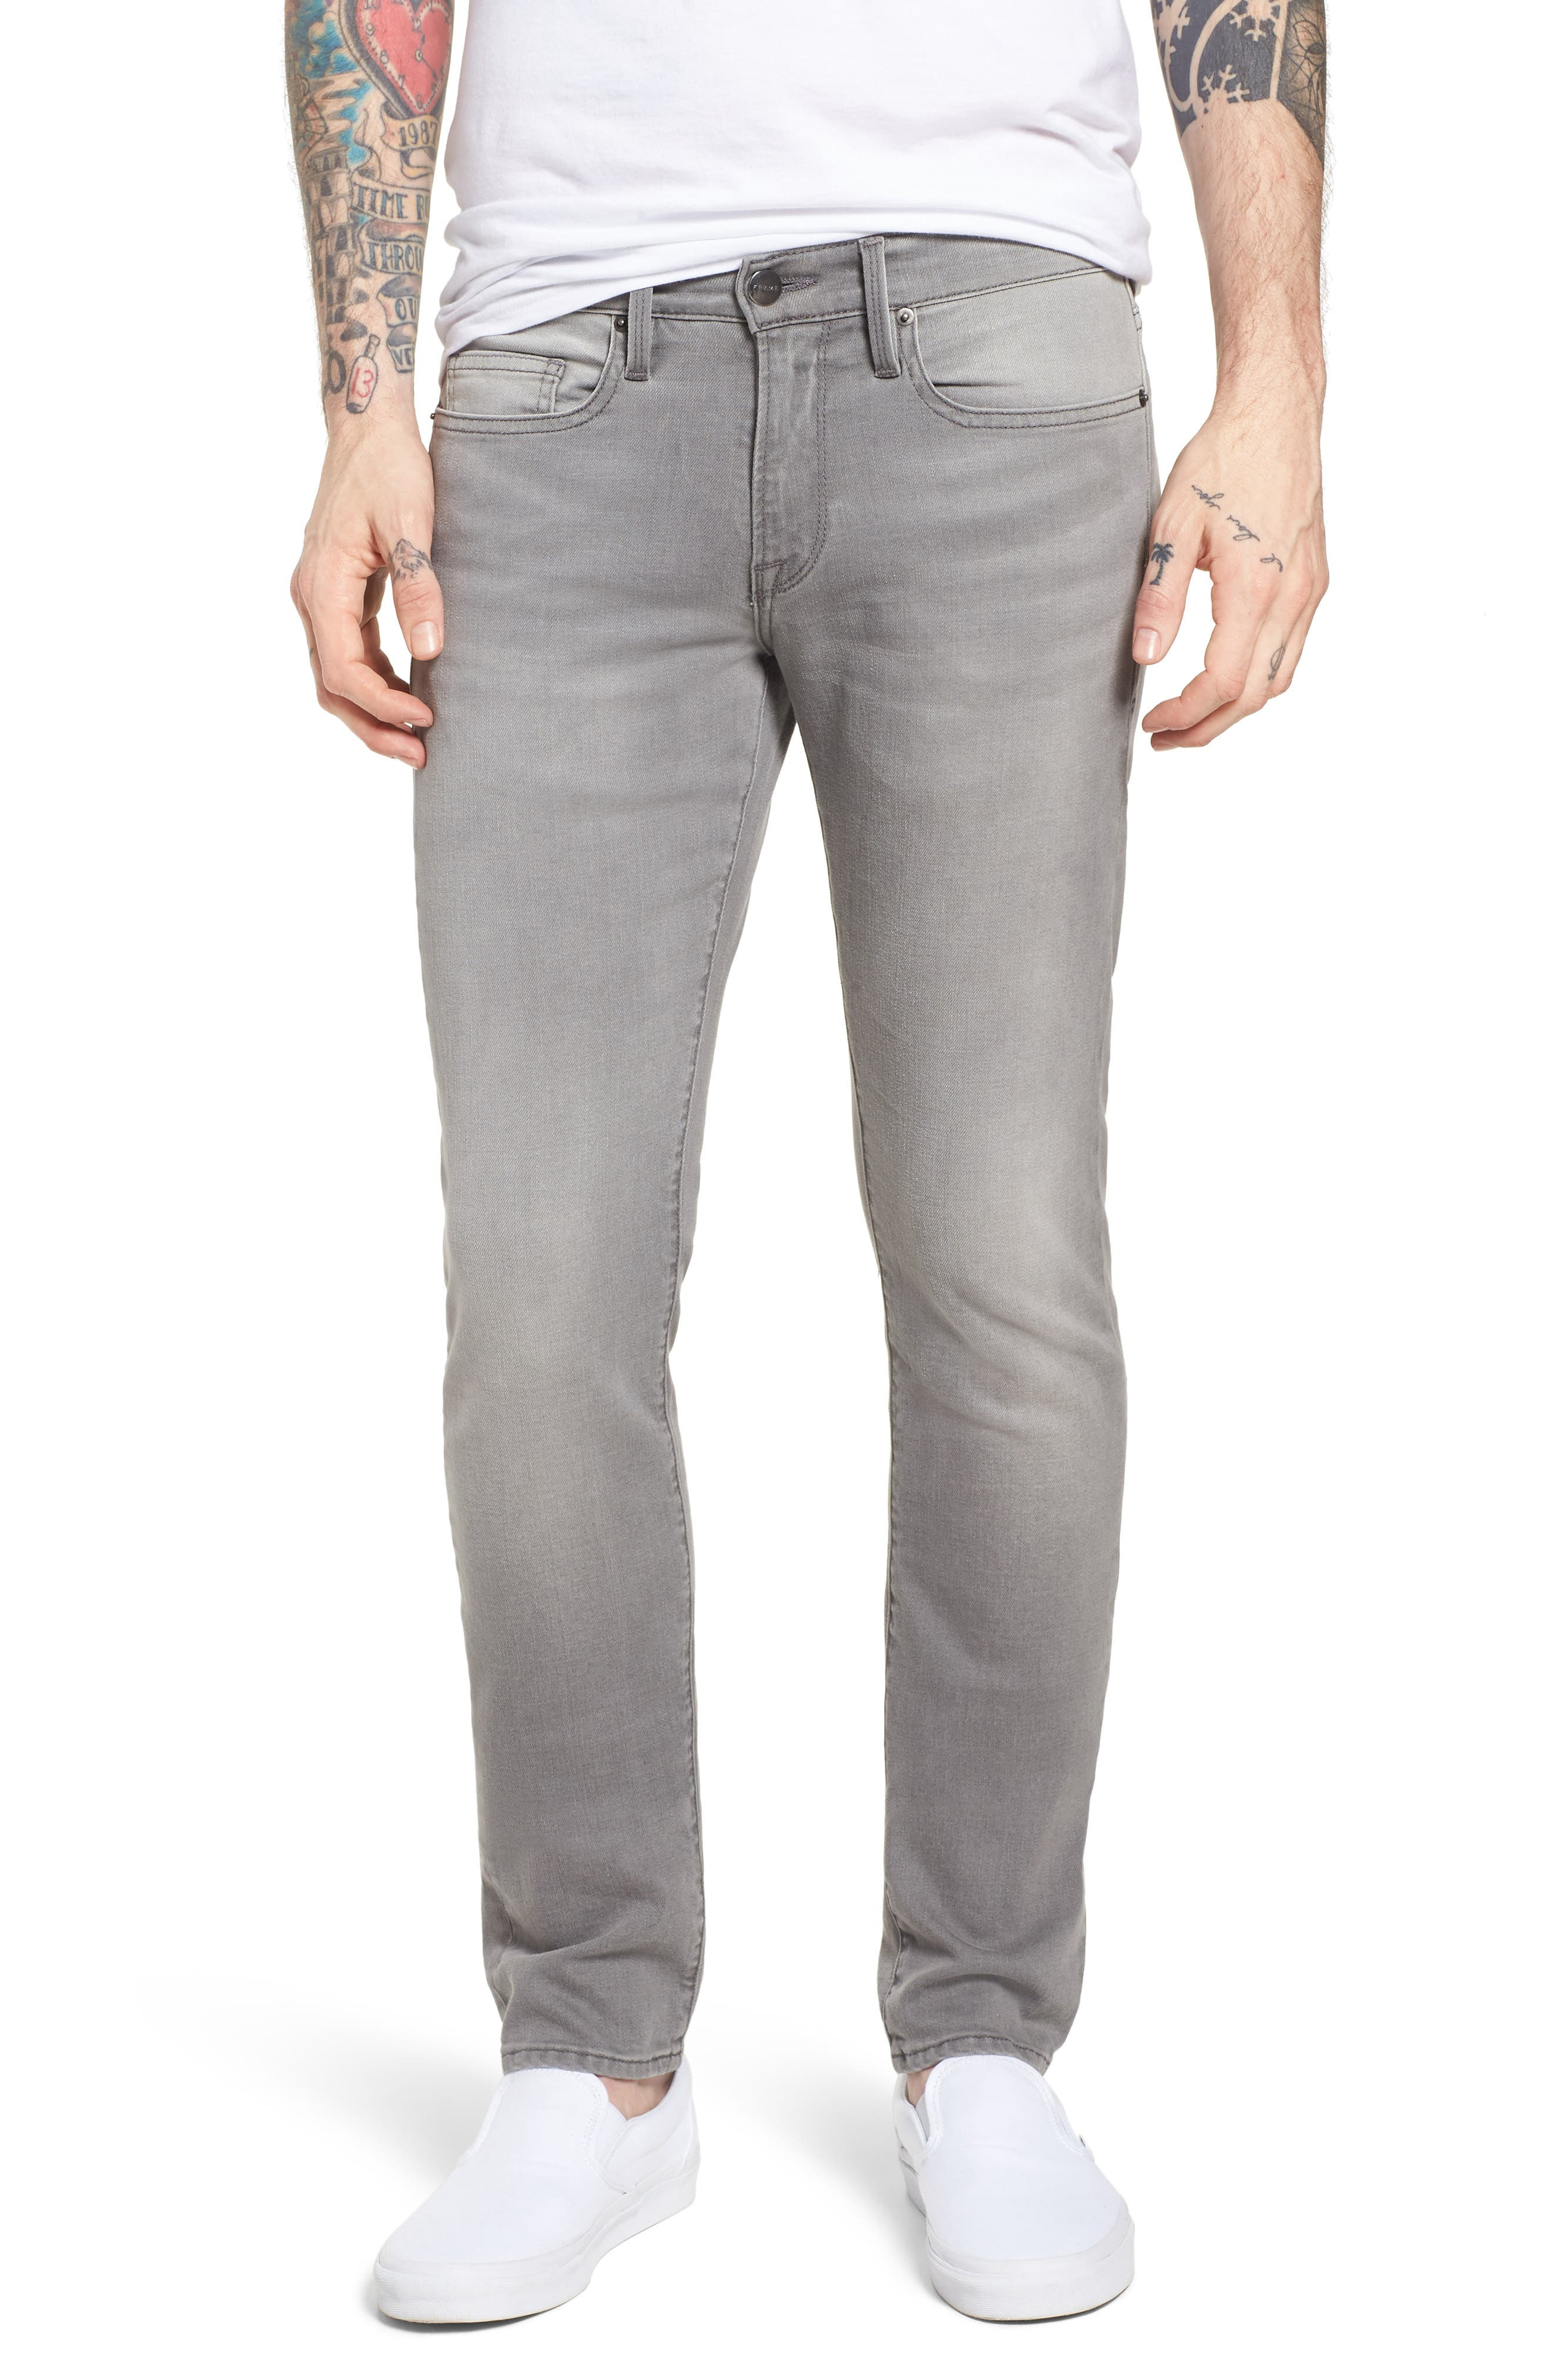 L'Homme Slim Fit Jeans,                         Main,                         color, Bedwell